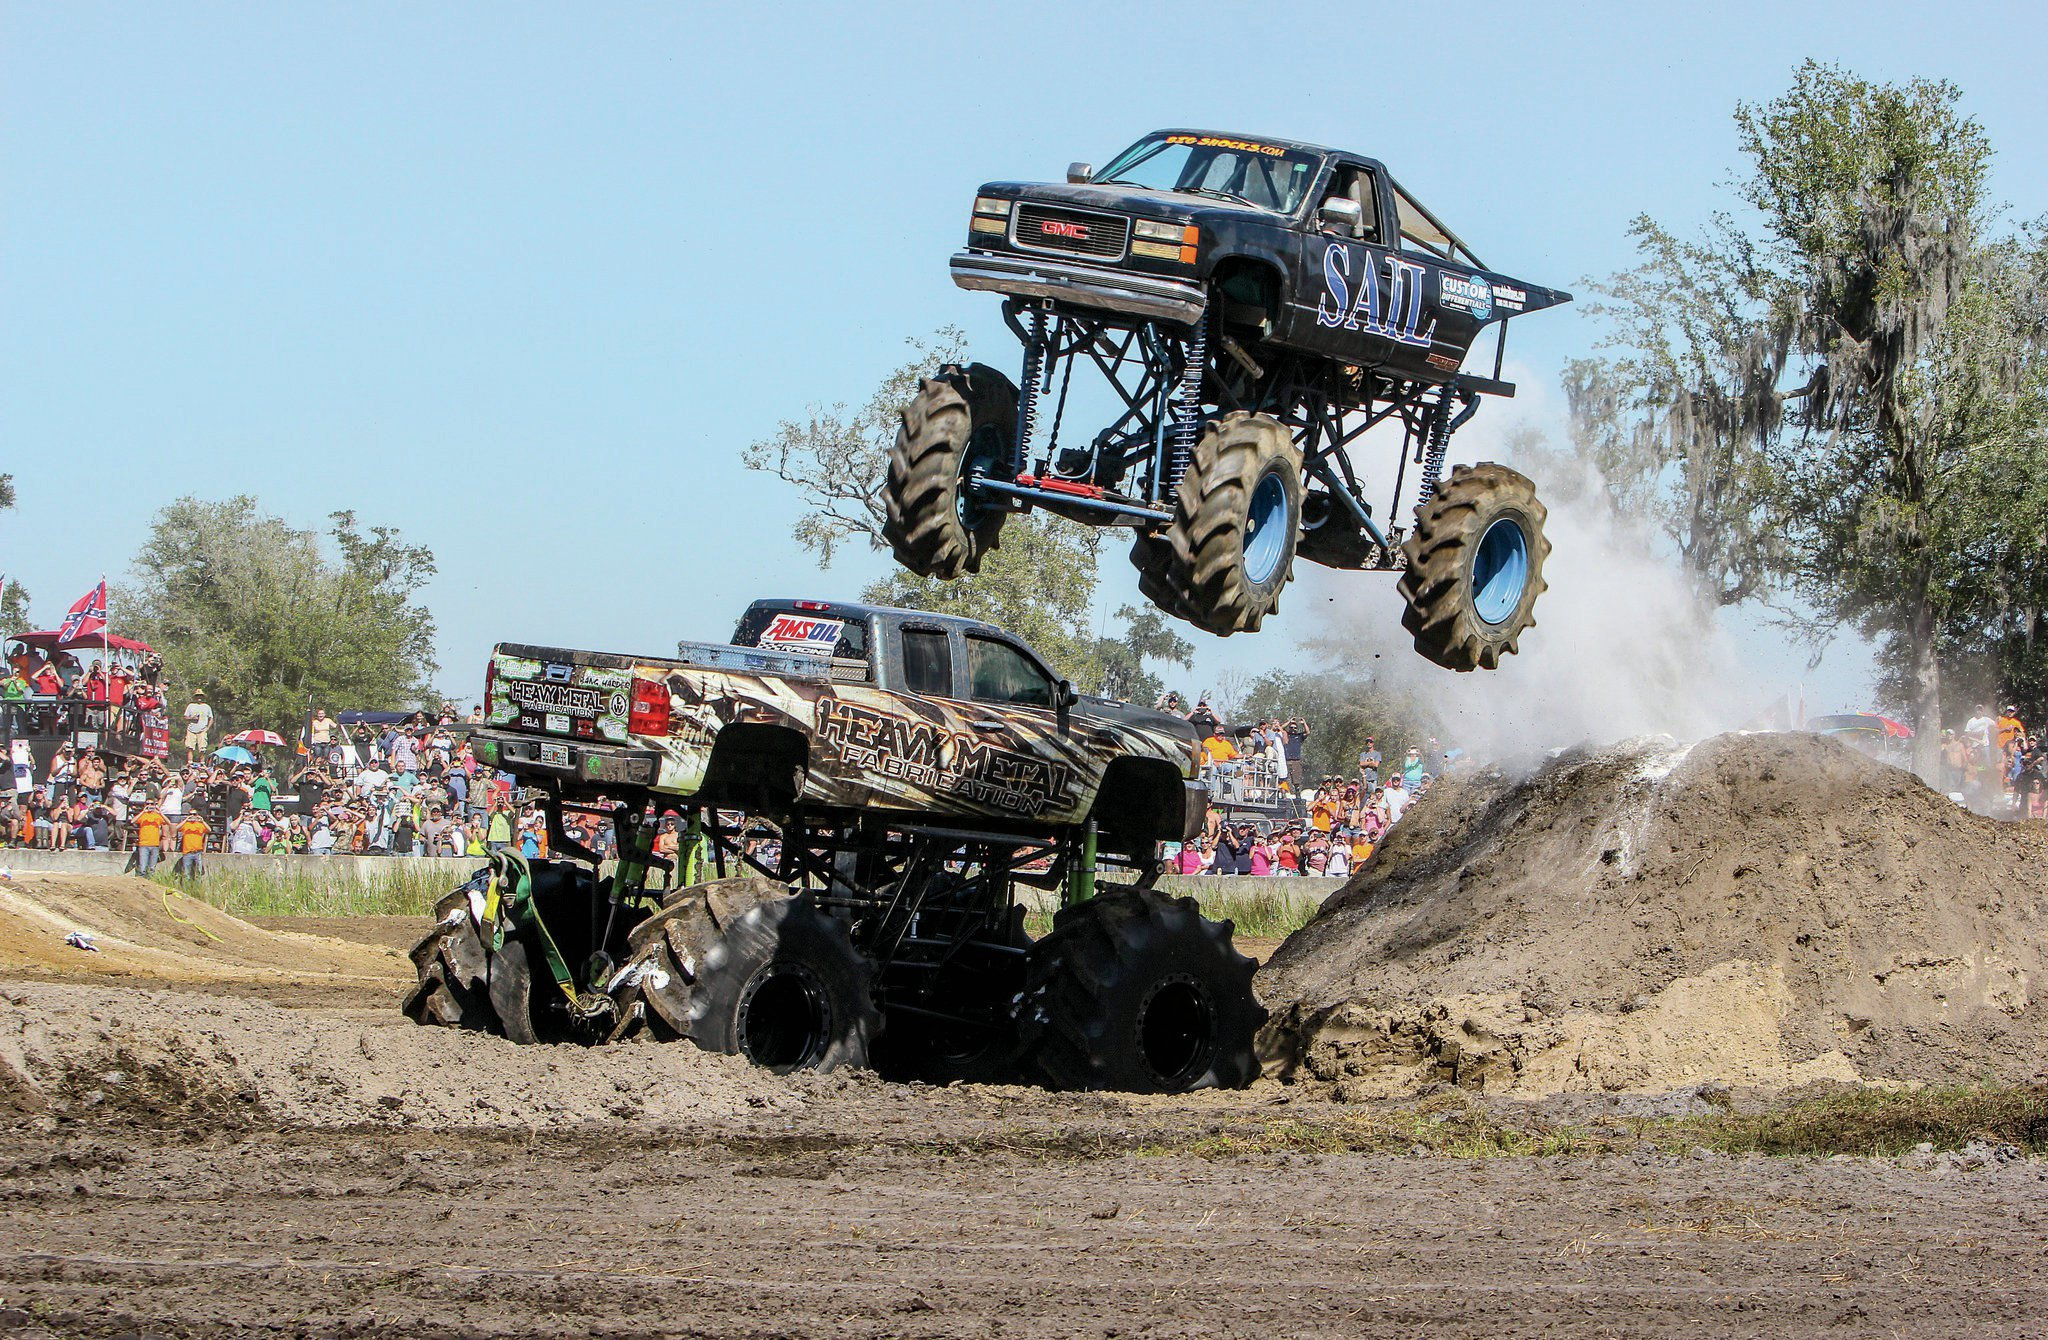 Not all events are muddy. For the crowd's entertainment, Scott Green launched his Sail mega truck over Bobby Brown's Heavy Metal mega truck during the freestyle competition. Scott was a crew member for Jeremy Naeger at Top Truck Champions' Challenge in 2012.